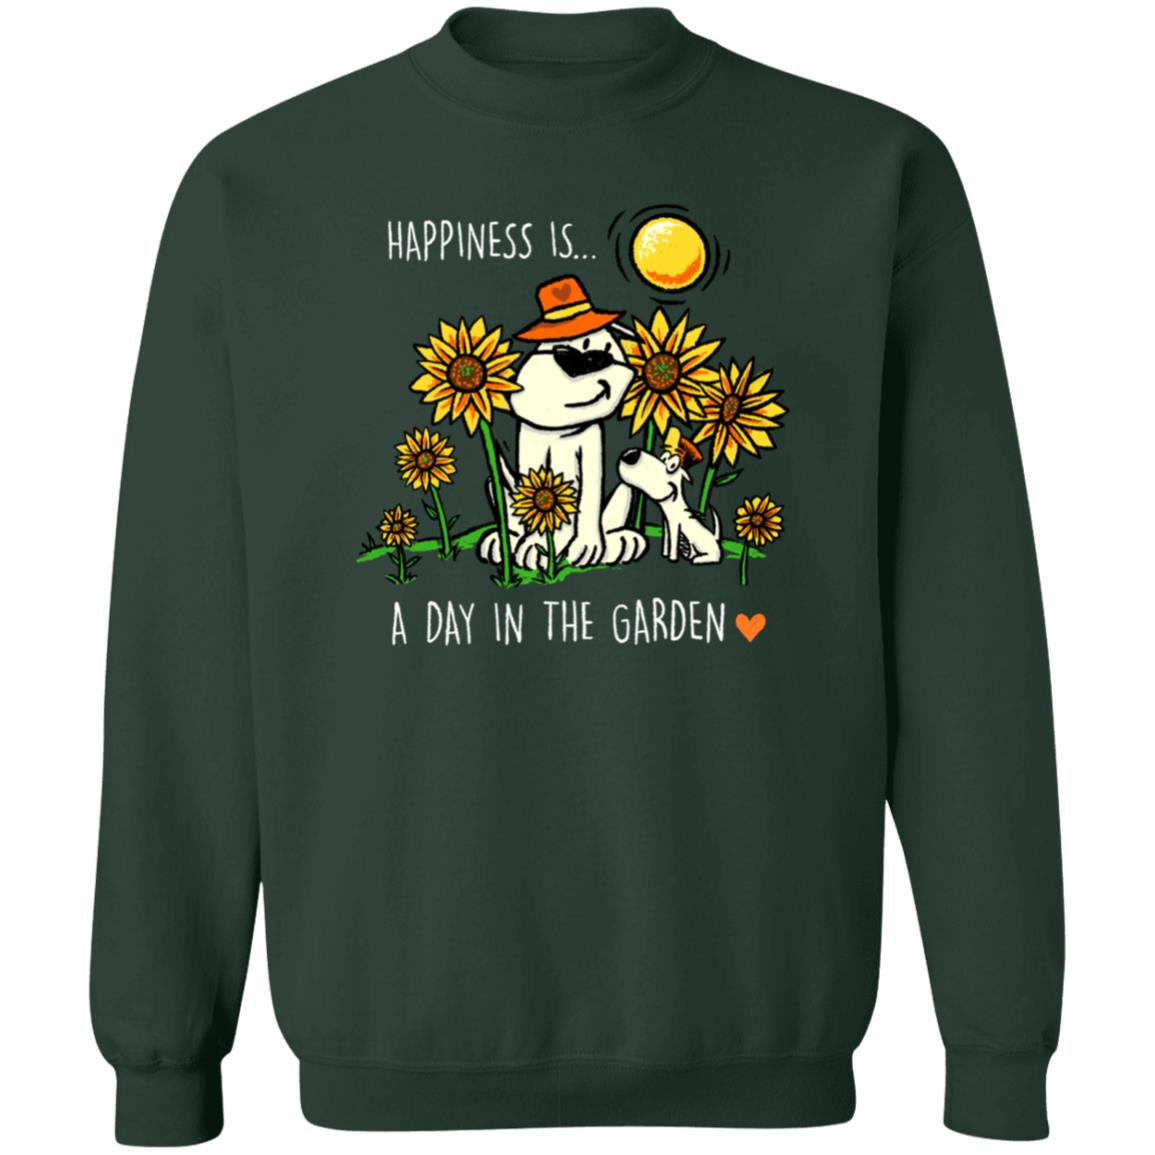 Happiness Is A Day In The Garden Green Sweatshirt 🐾  Deal Up To 25% Off!